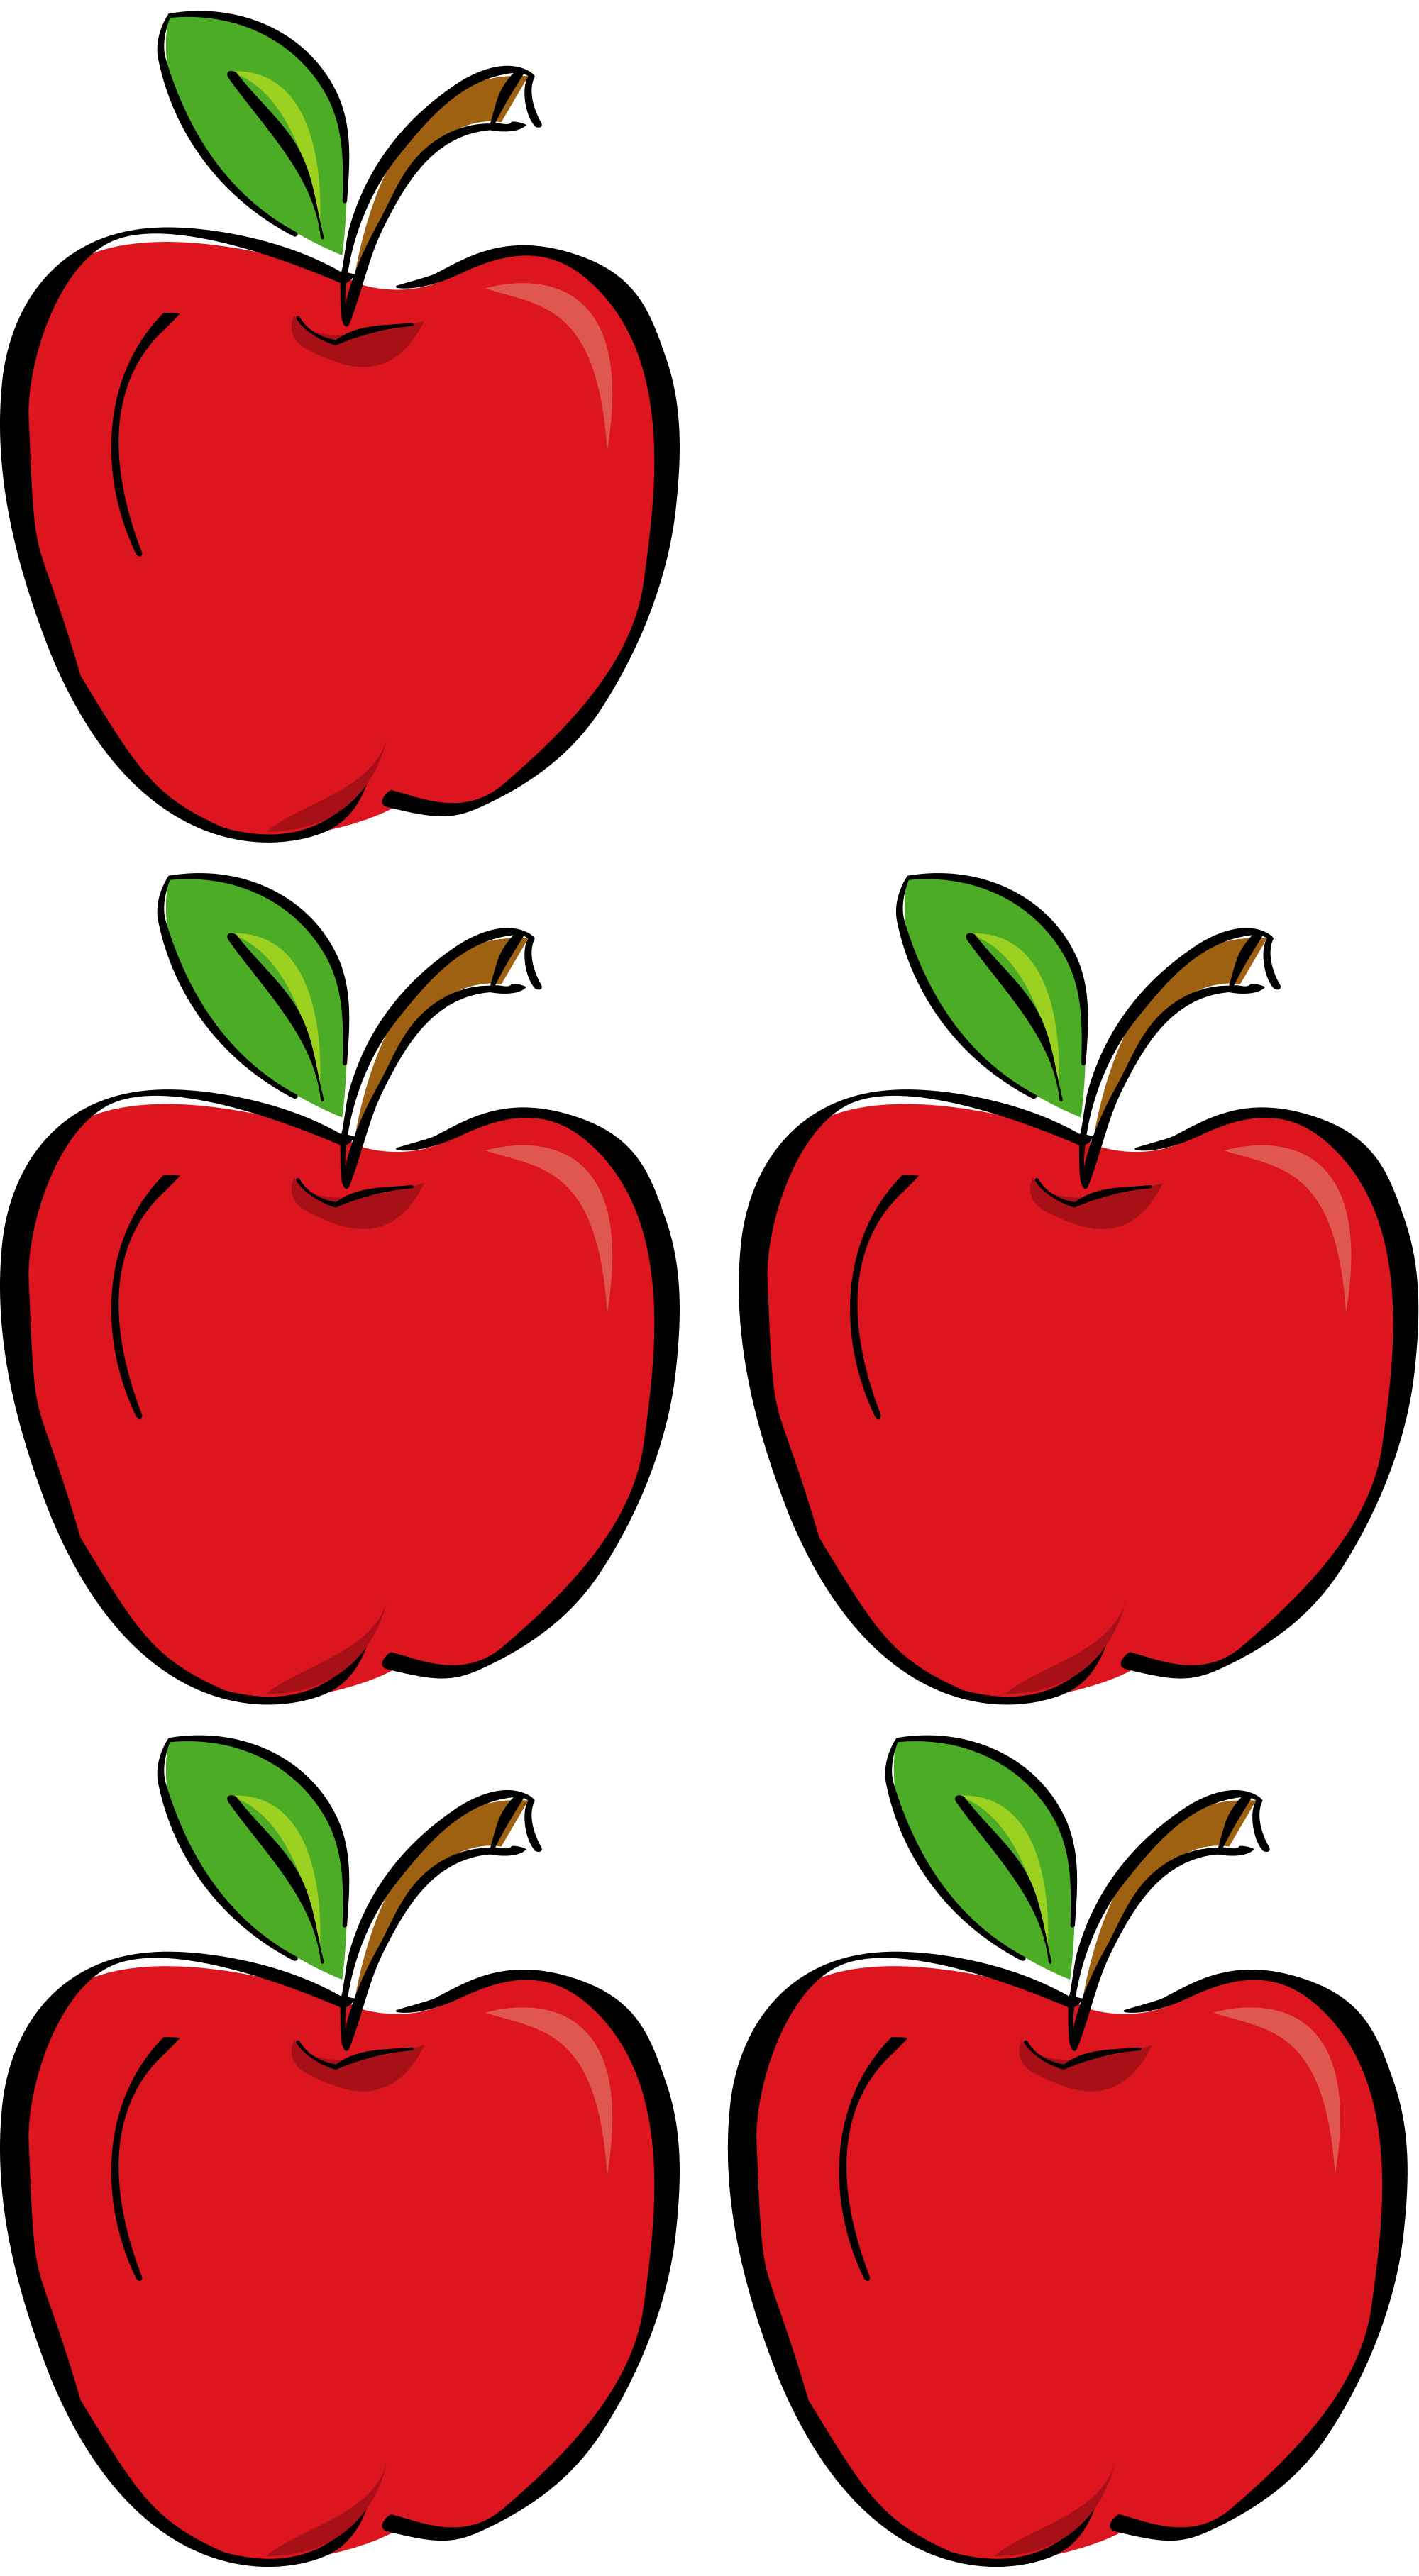 File:Addition01.svg - Wikimedia Commons